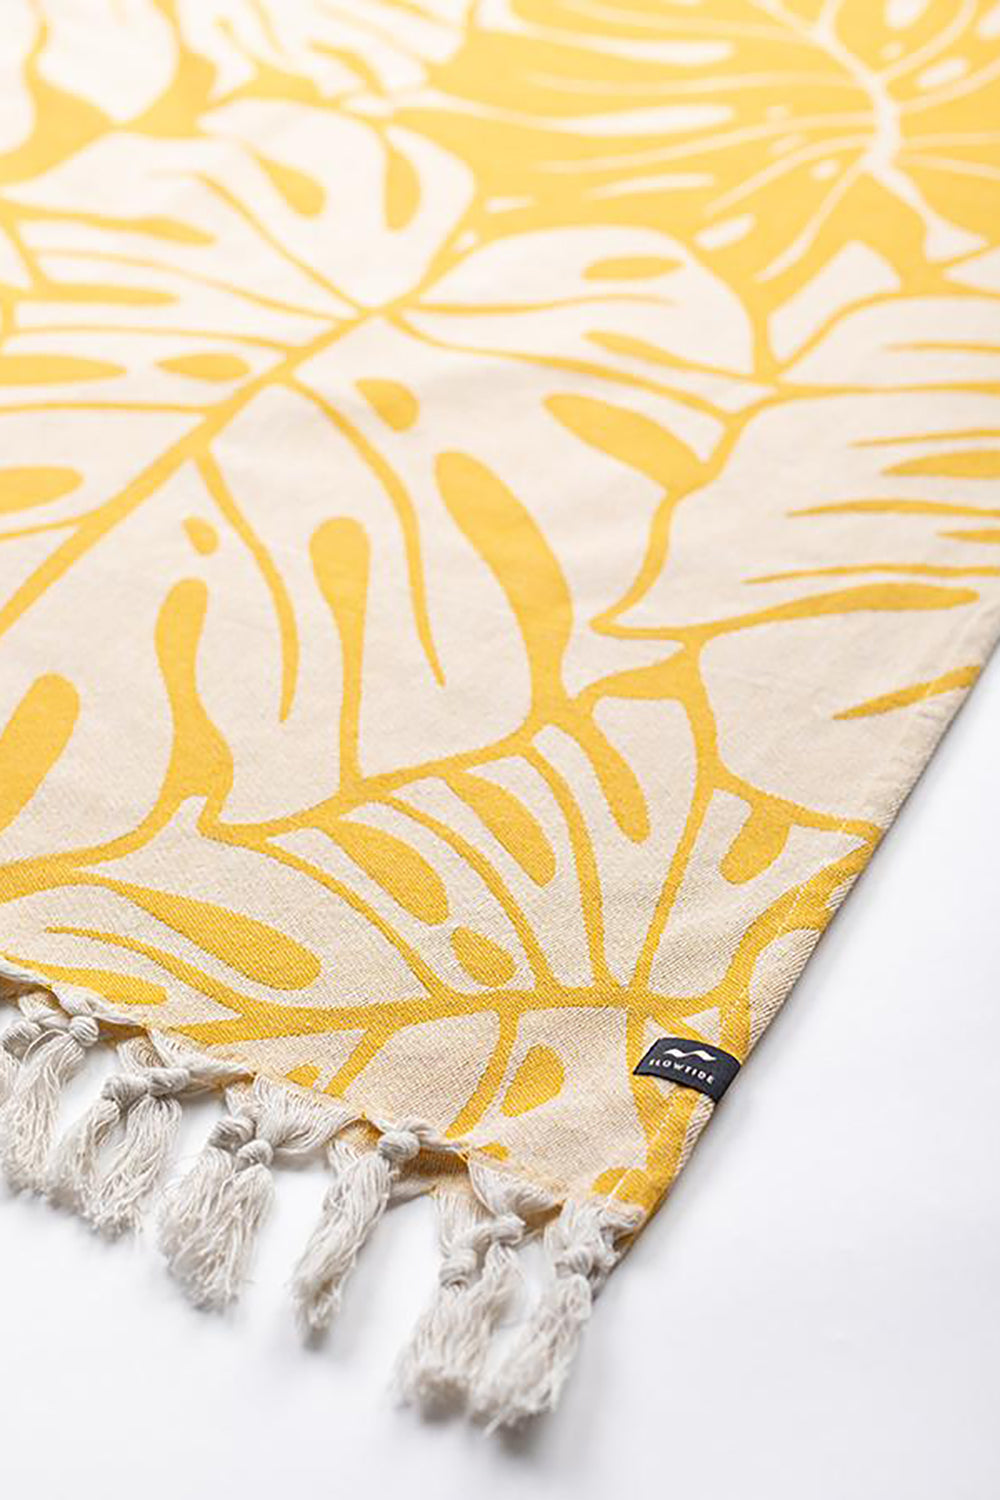 Slowtide Turkish Beach Towel in Tarovine